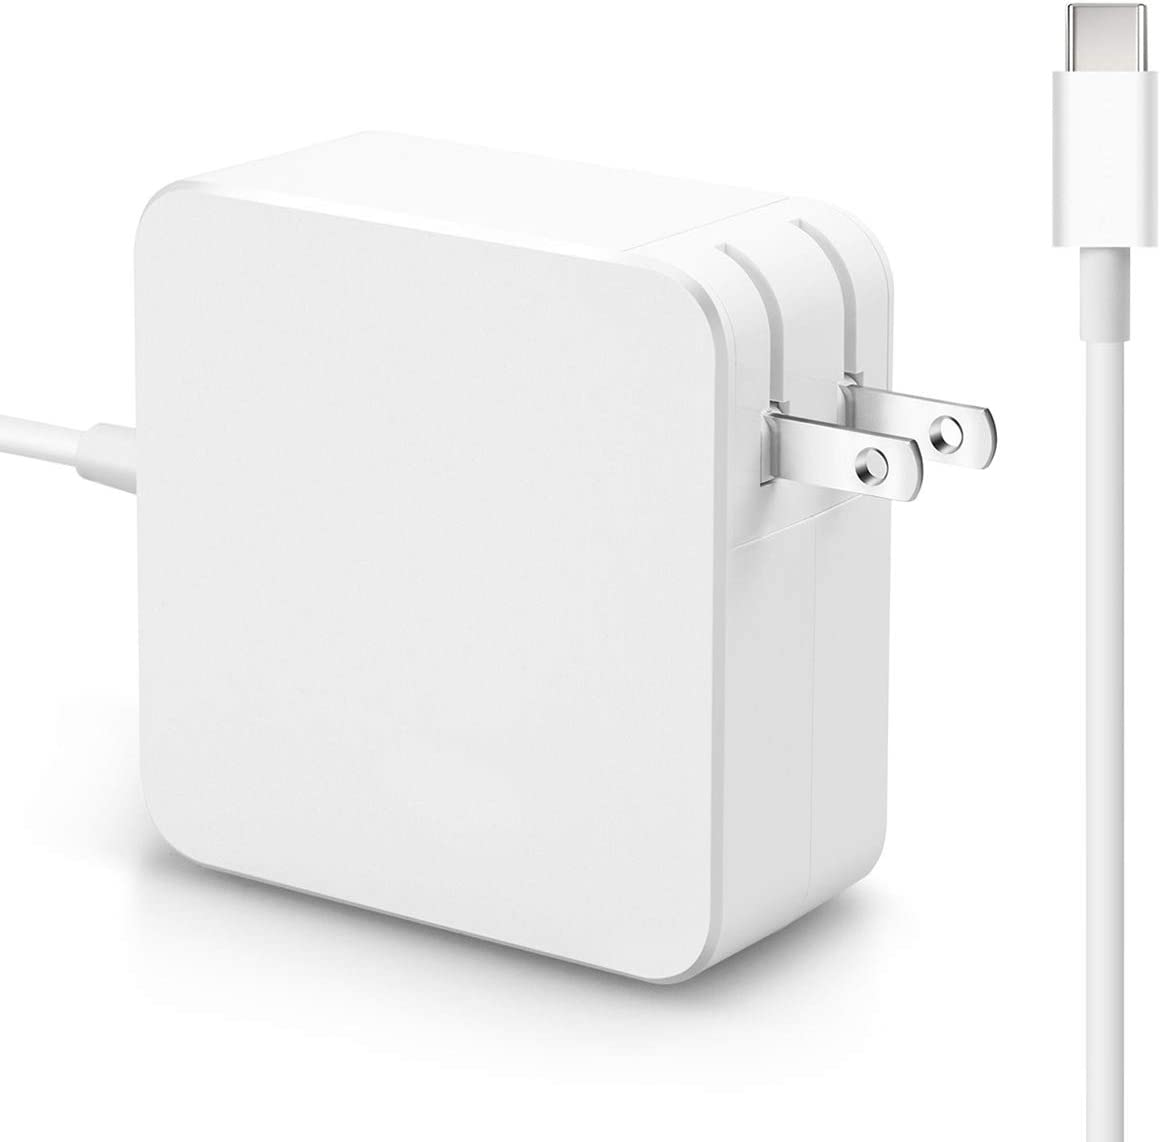 USB C Charger, 87W/90W USB Type C Power Adapter for Apple MacBook Pro/Air 15/13/12-Inch 2018 2019, Lenovo ThinkPad Yoga 920/910/720,HP Spectre,and More laptops Tablets or Smart Phones with USB C